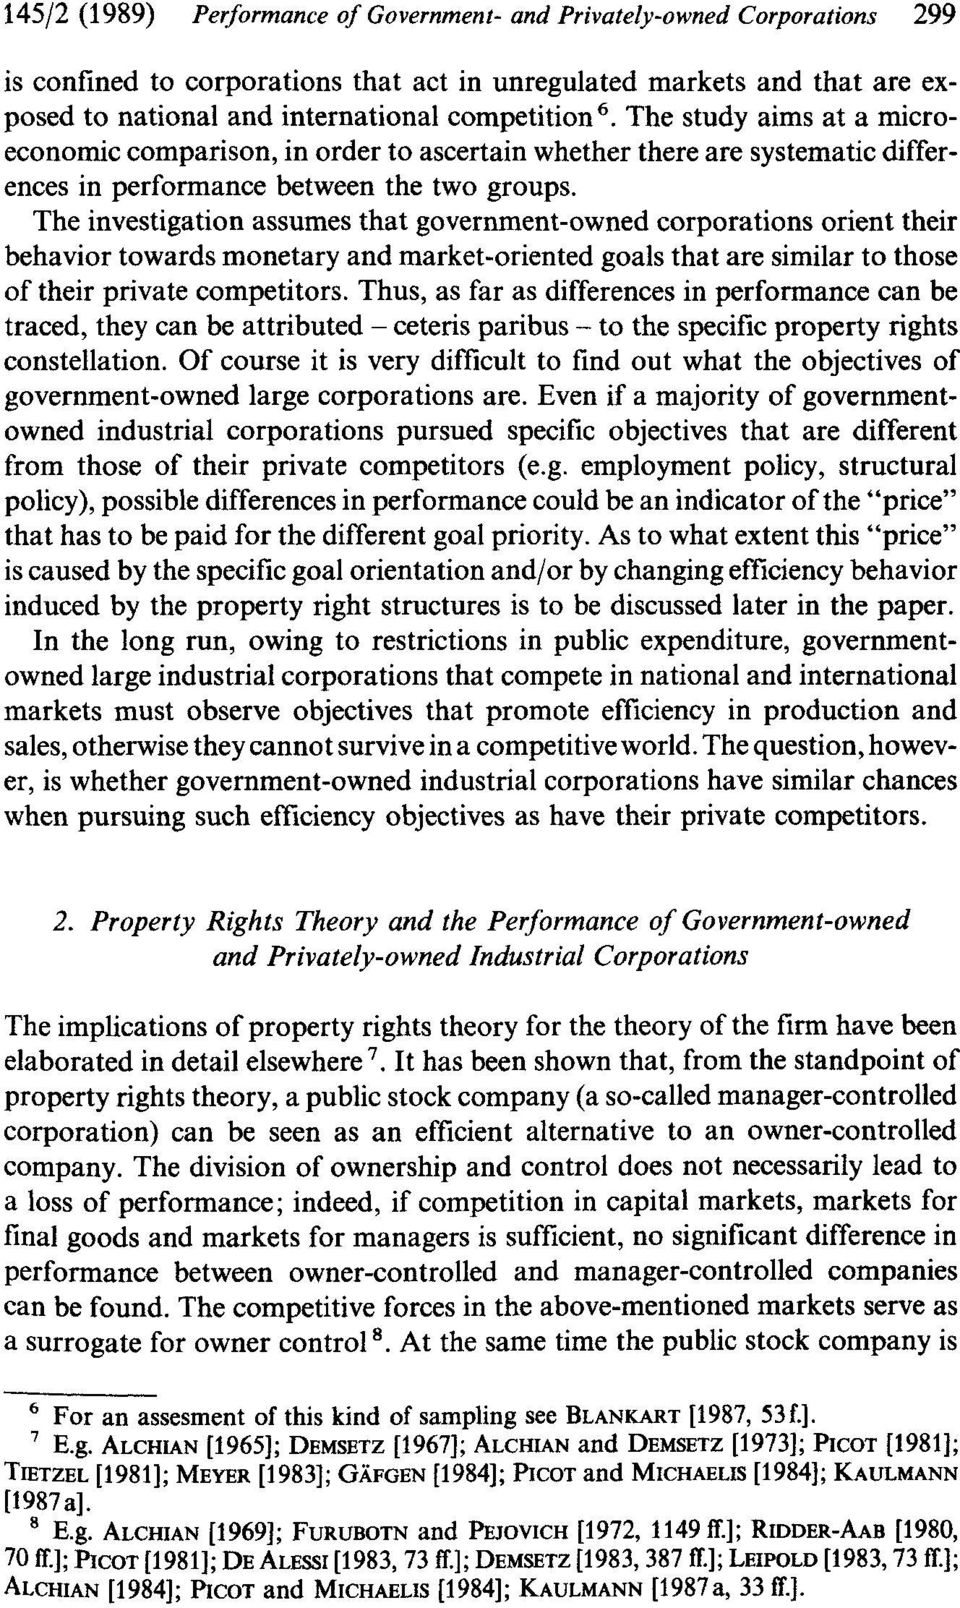 The investigation assumes that government-owned corporations orient their behavior towards monetary and market-oriented goals that are similar to those of their private competitors.